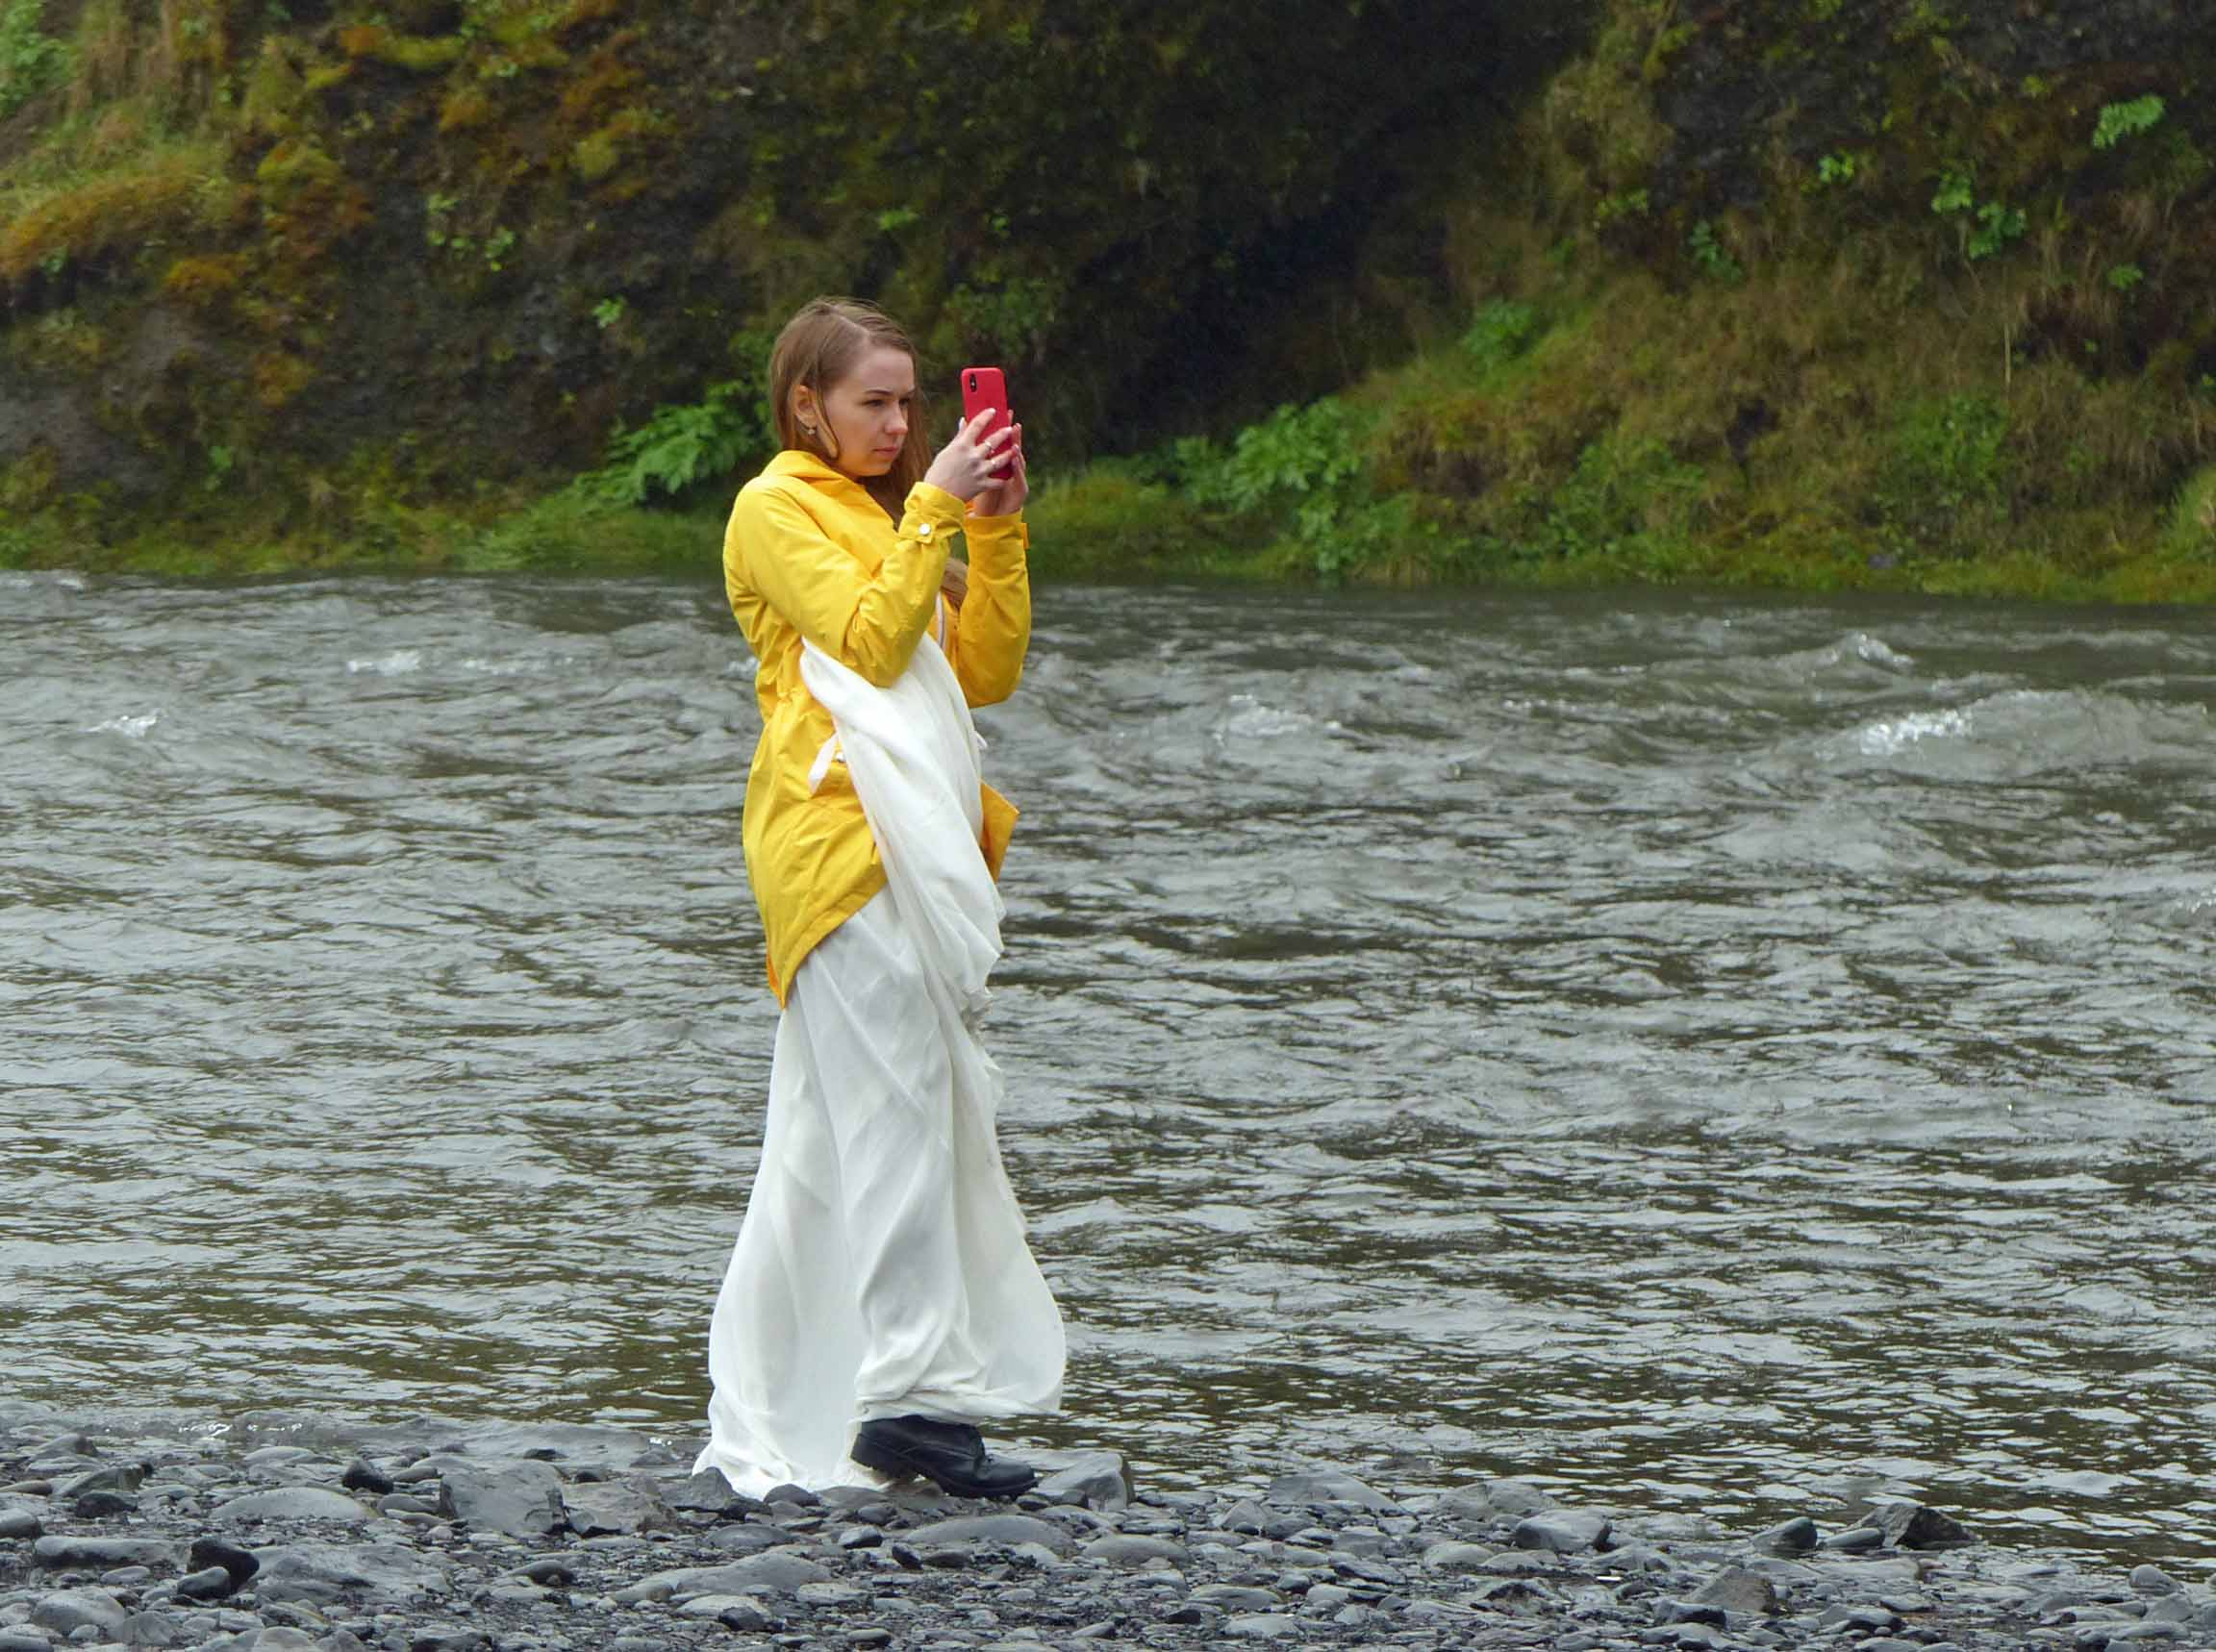 Girl in long white dress and yellow jacket